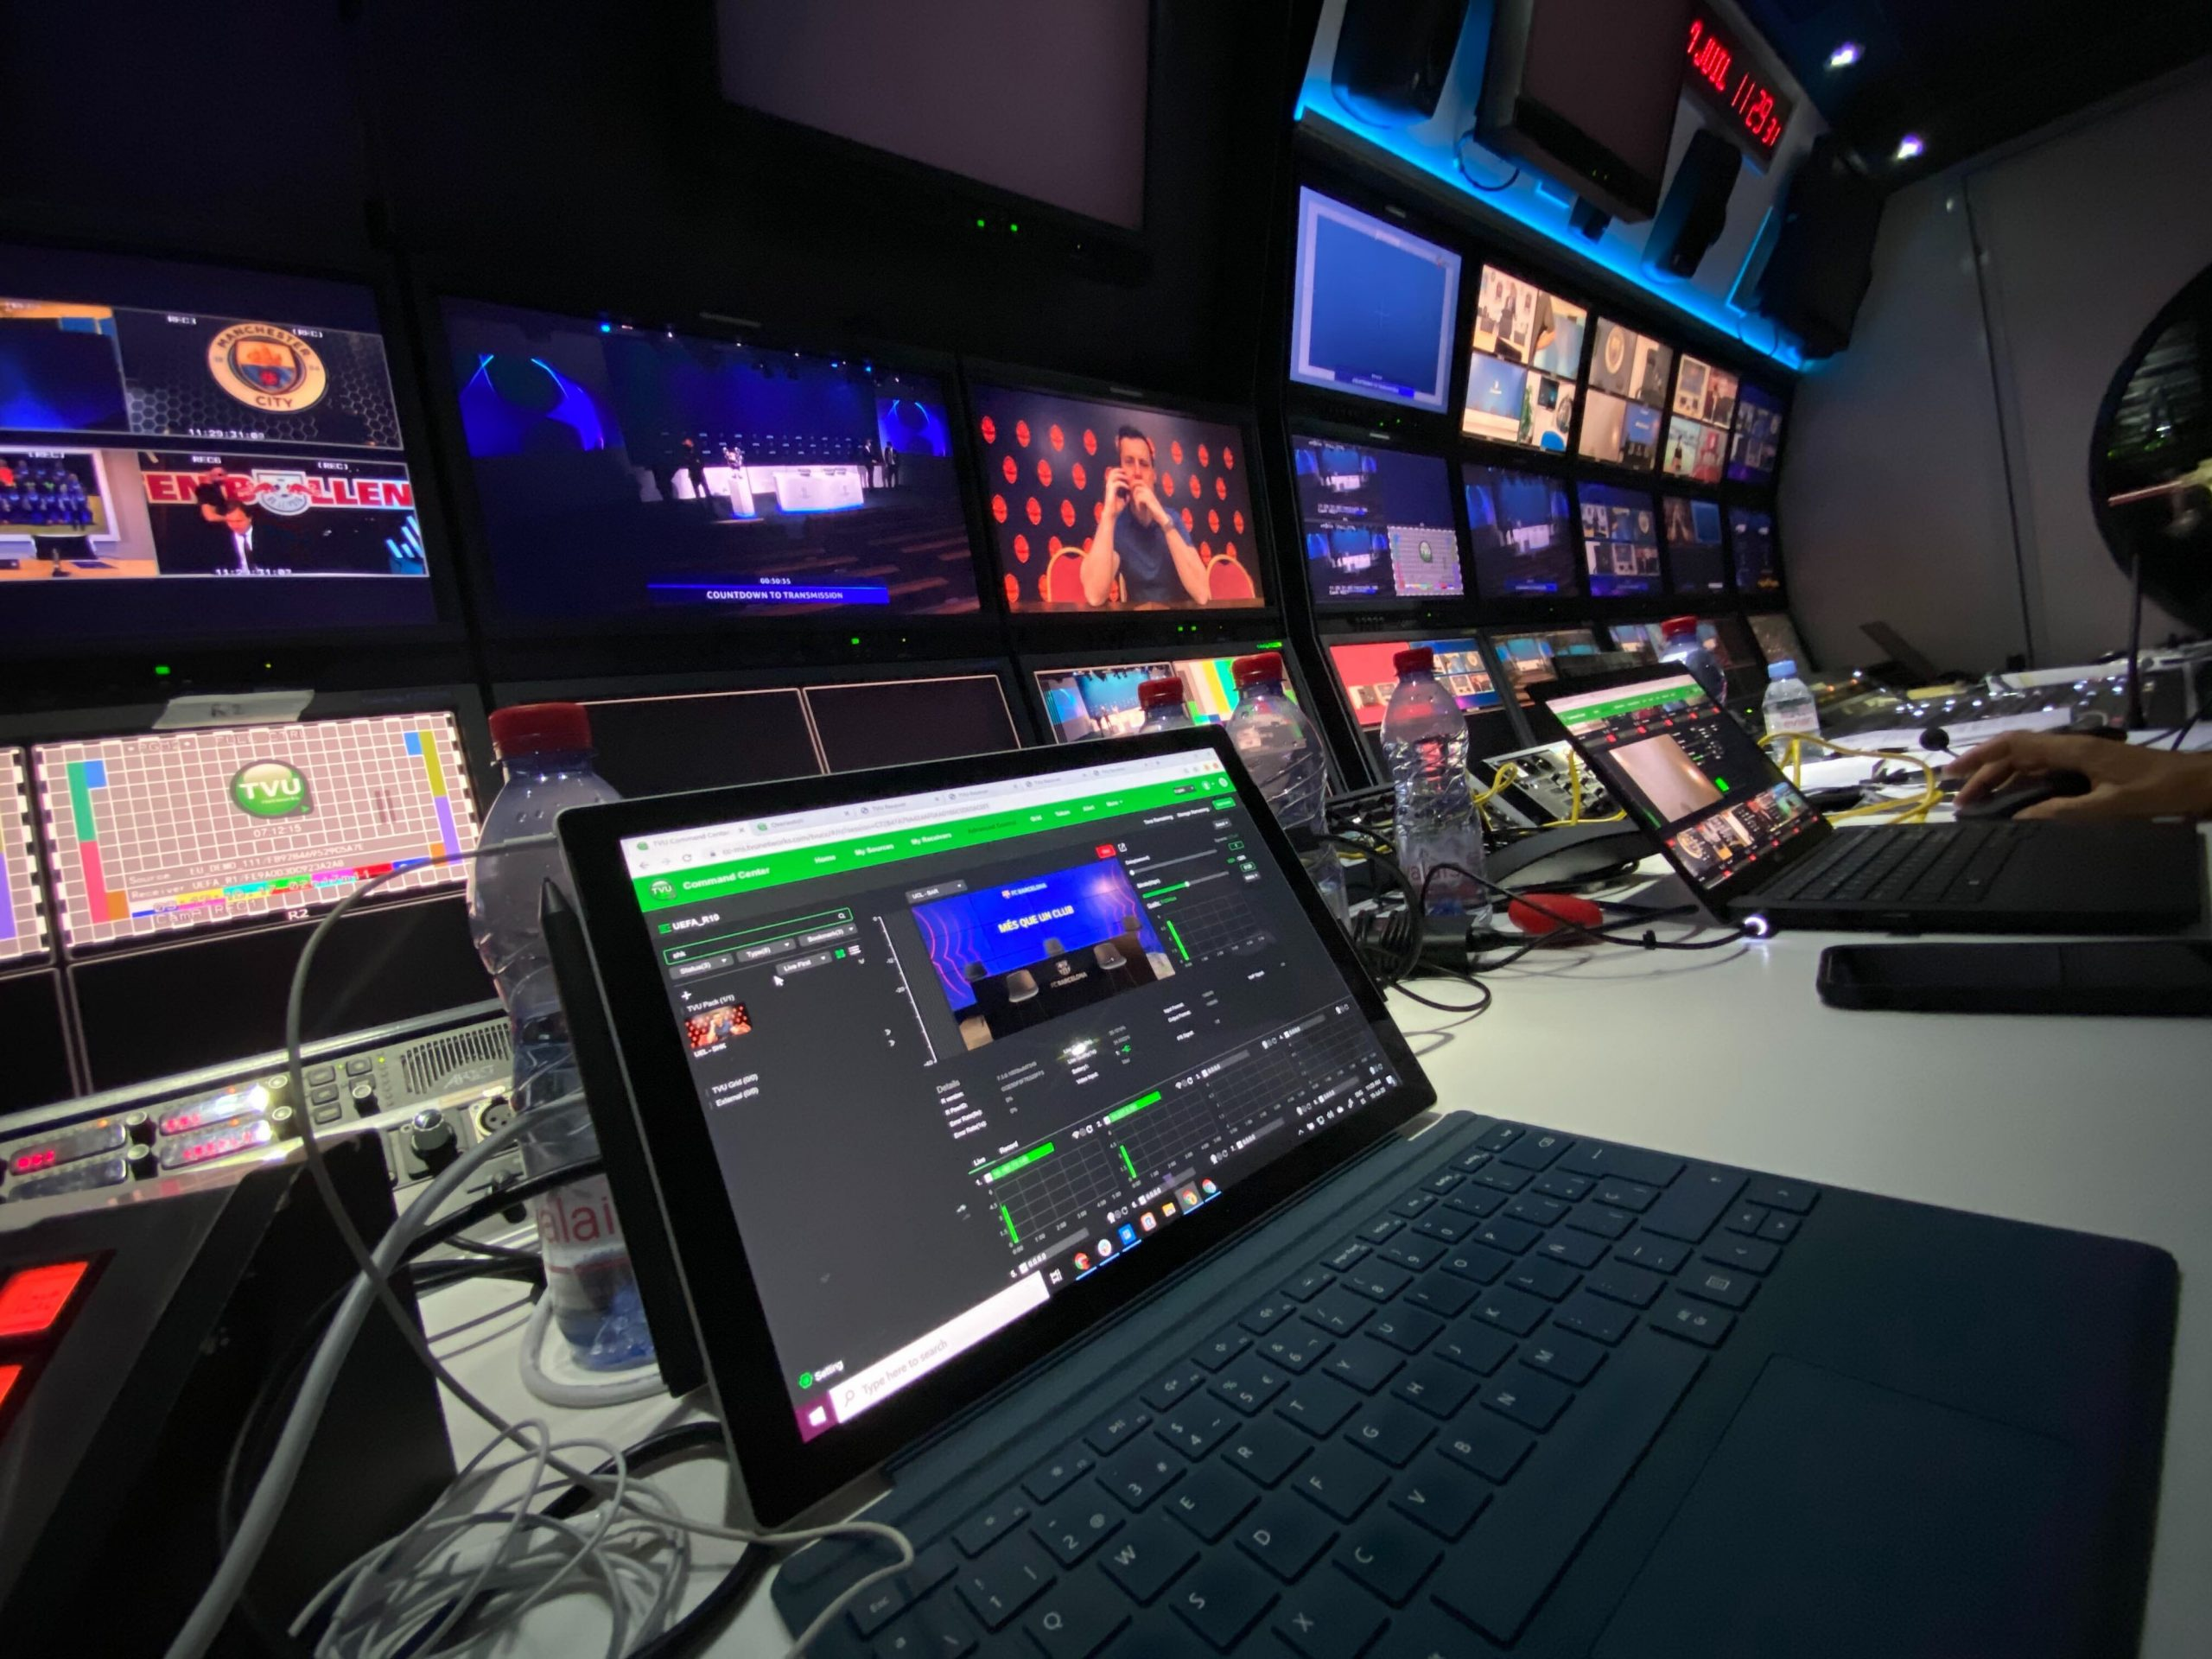 tvu networks plays part in live uefa 2020 21 champions league group stage draw helps fednet launch joint real time video content service tvu networks plays part in live uefa